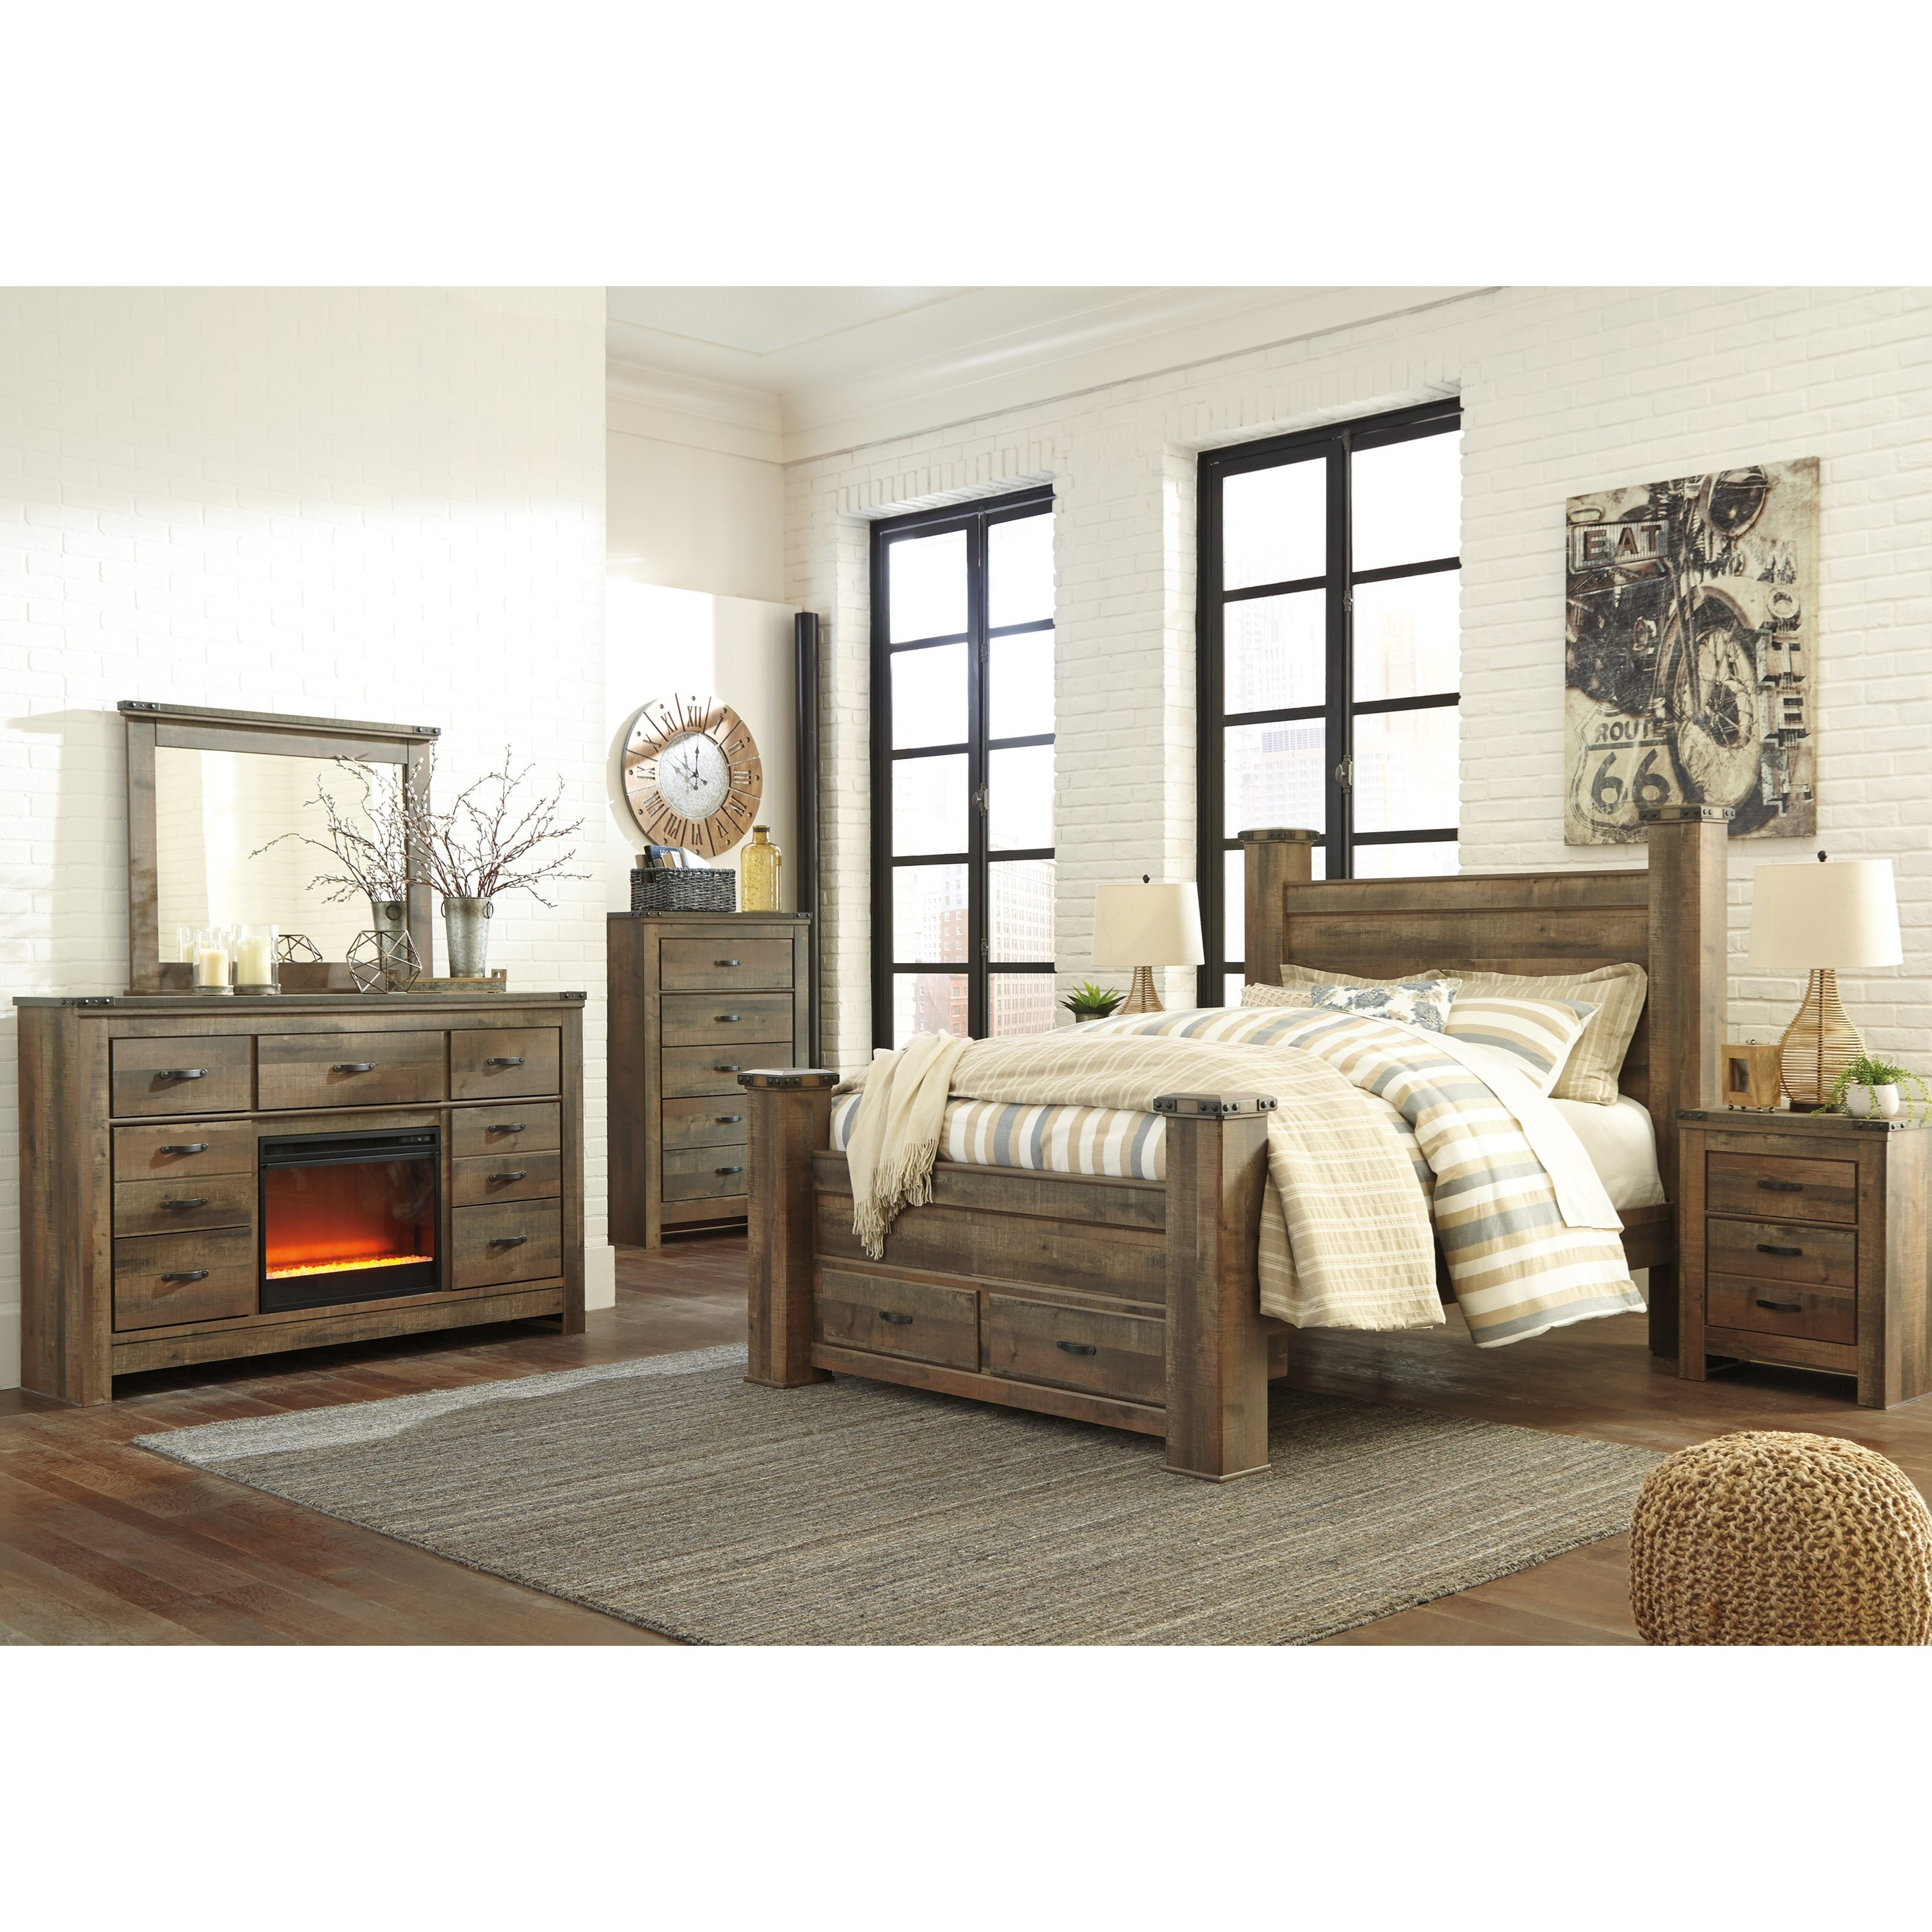 Trinell Queen Bedroom Group by Signature Design by Ashley at Northeast Factory Direct